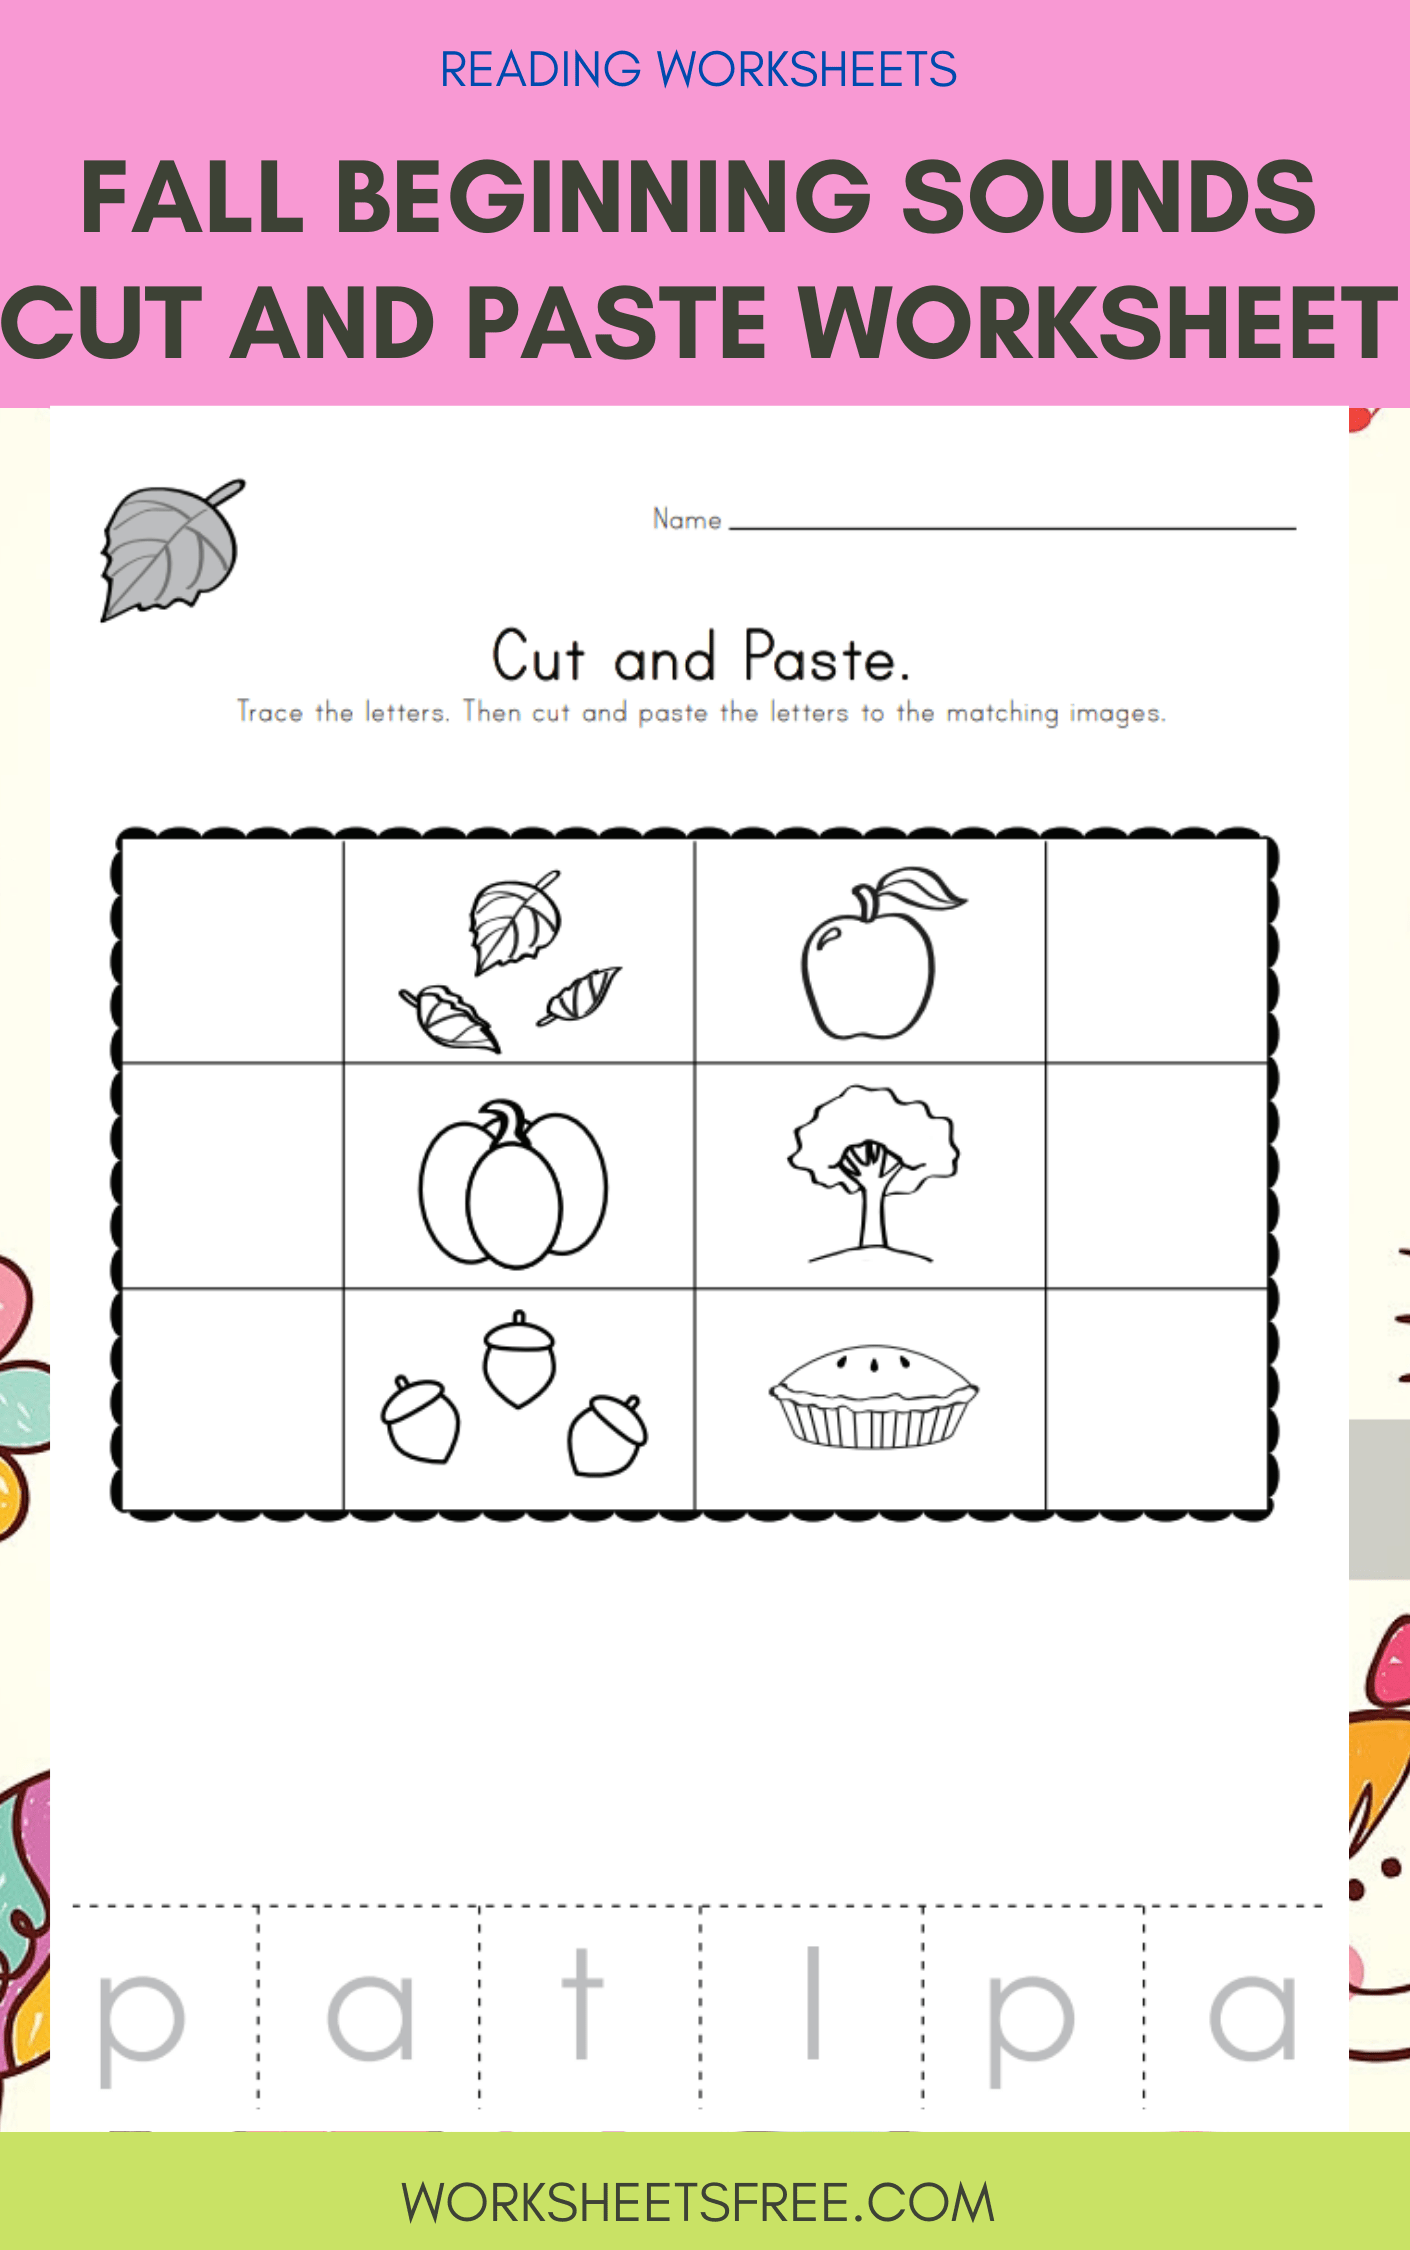 Fall-Beginning-Sounds-Cut-and-Paste-Worksheet